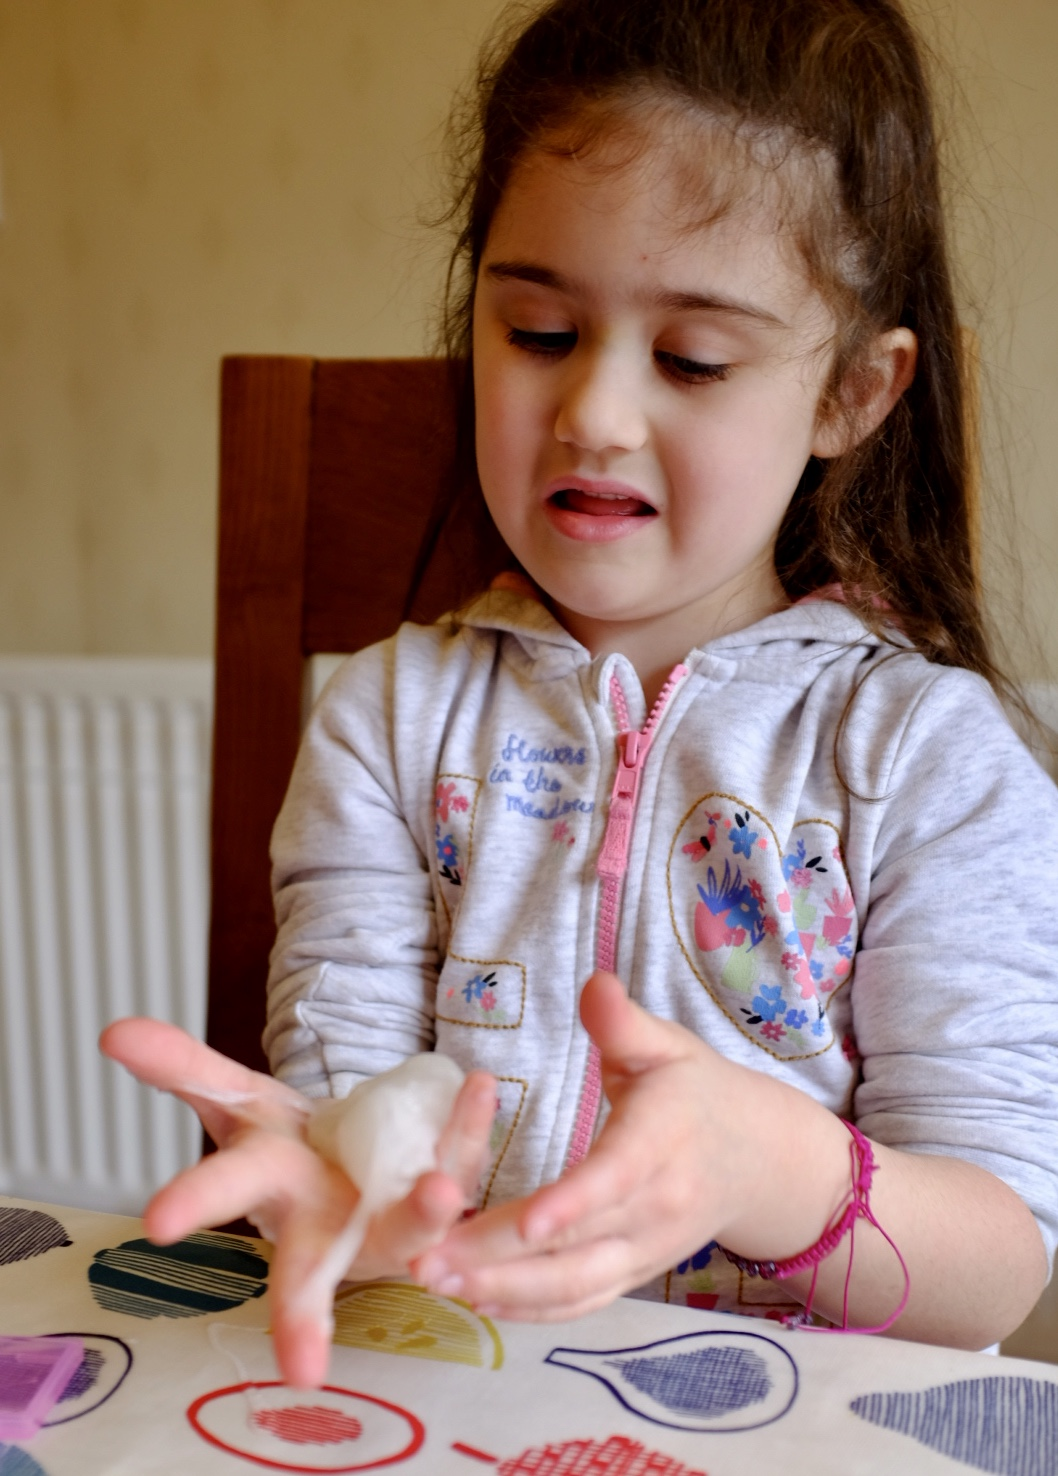 girl playing with glam goo deluxe kit slime